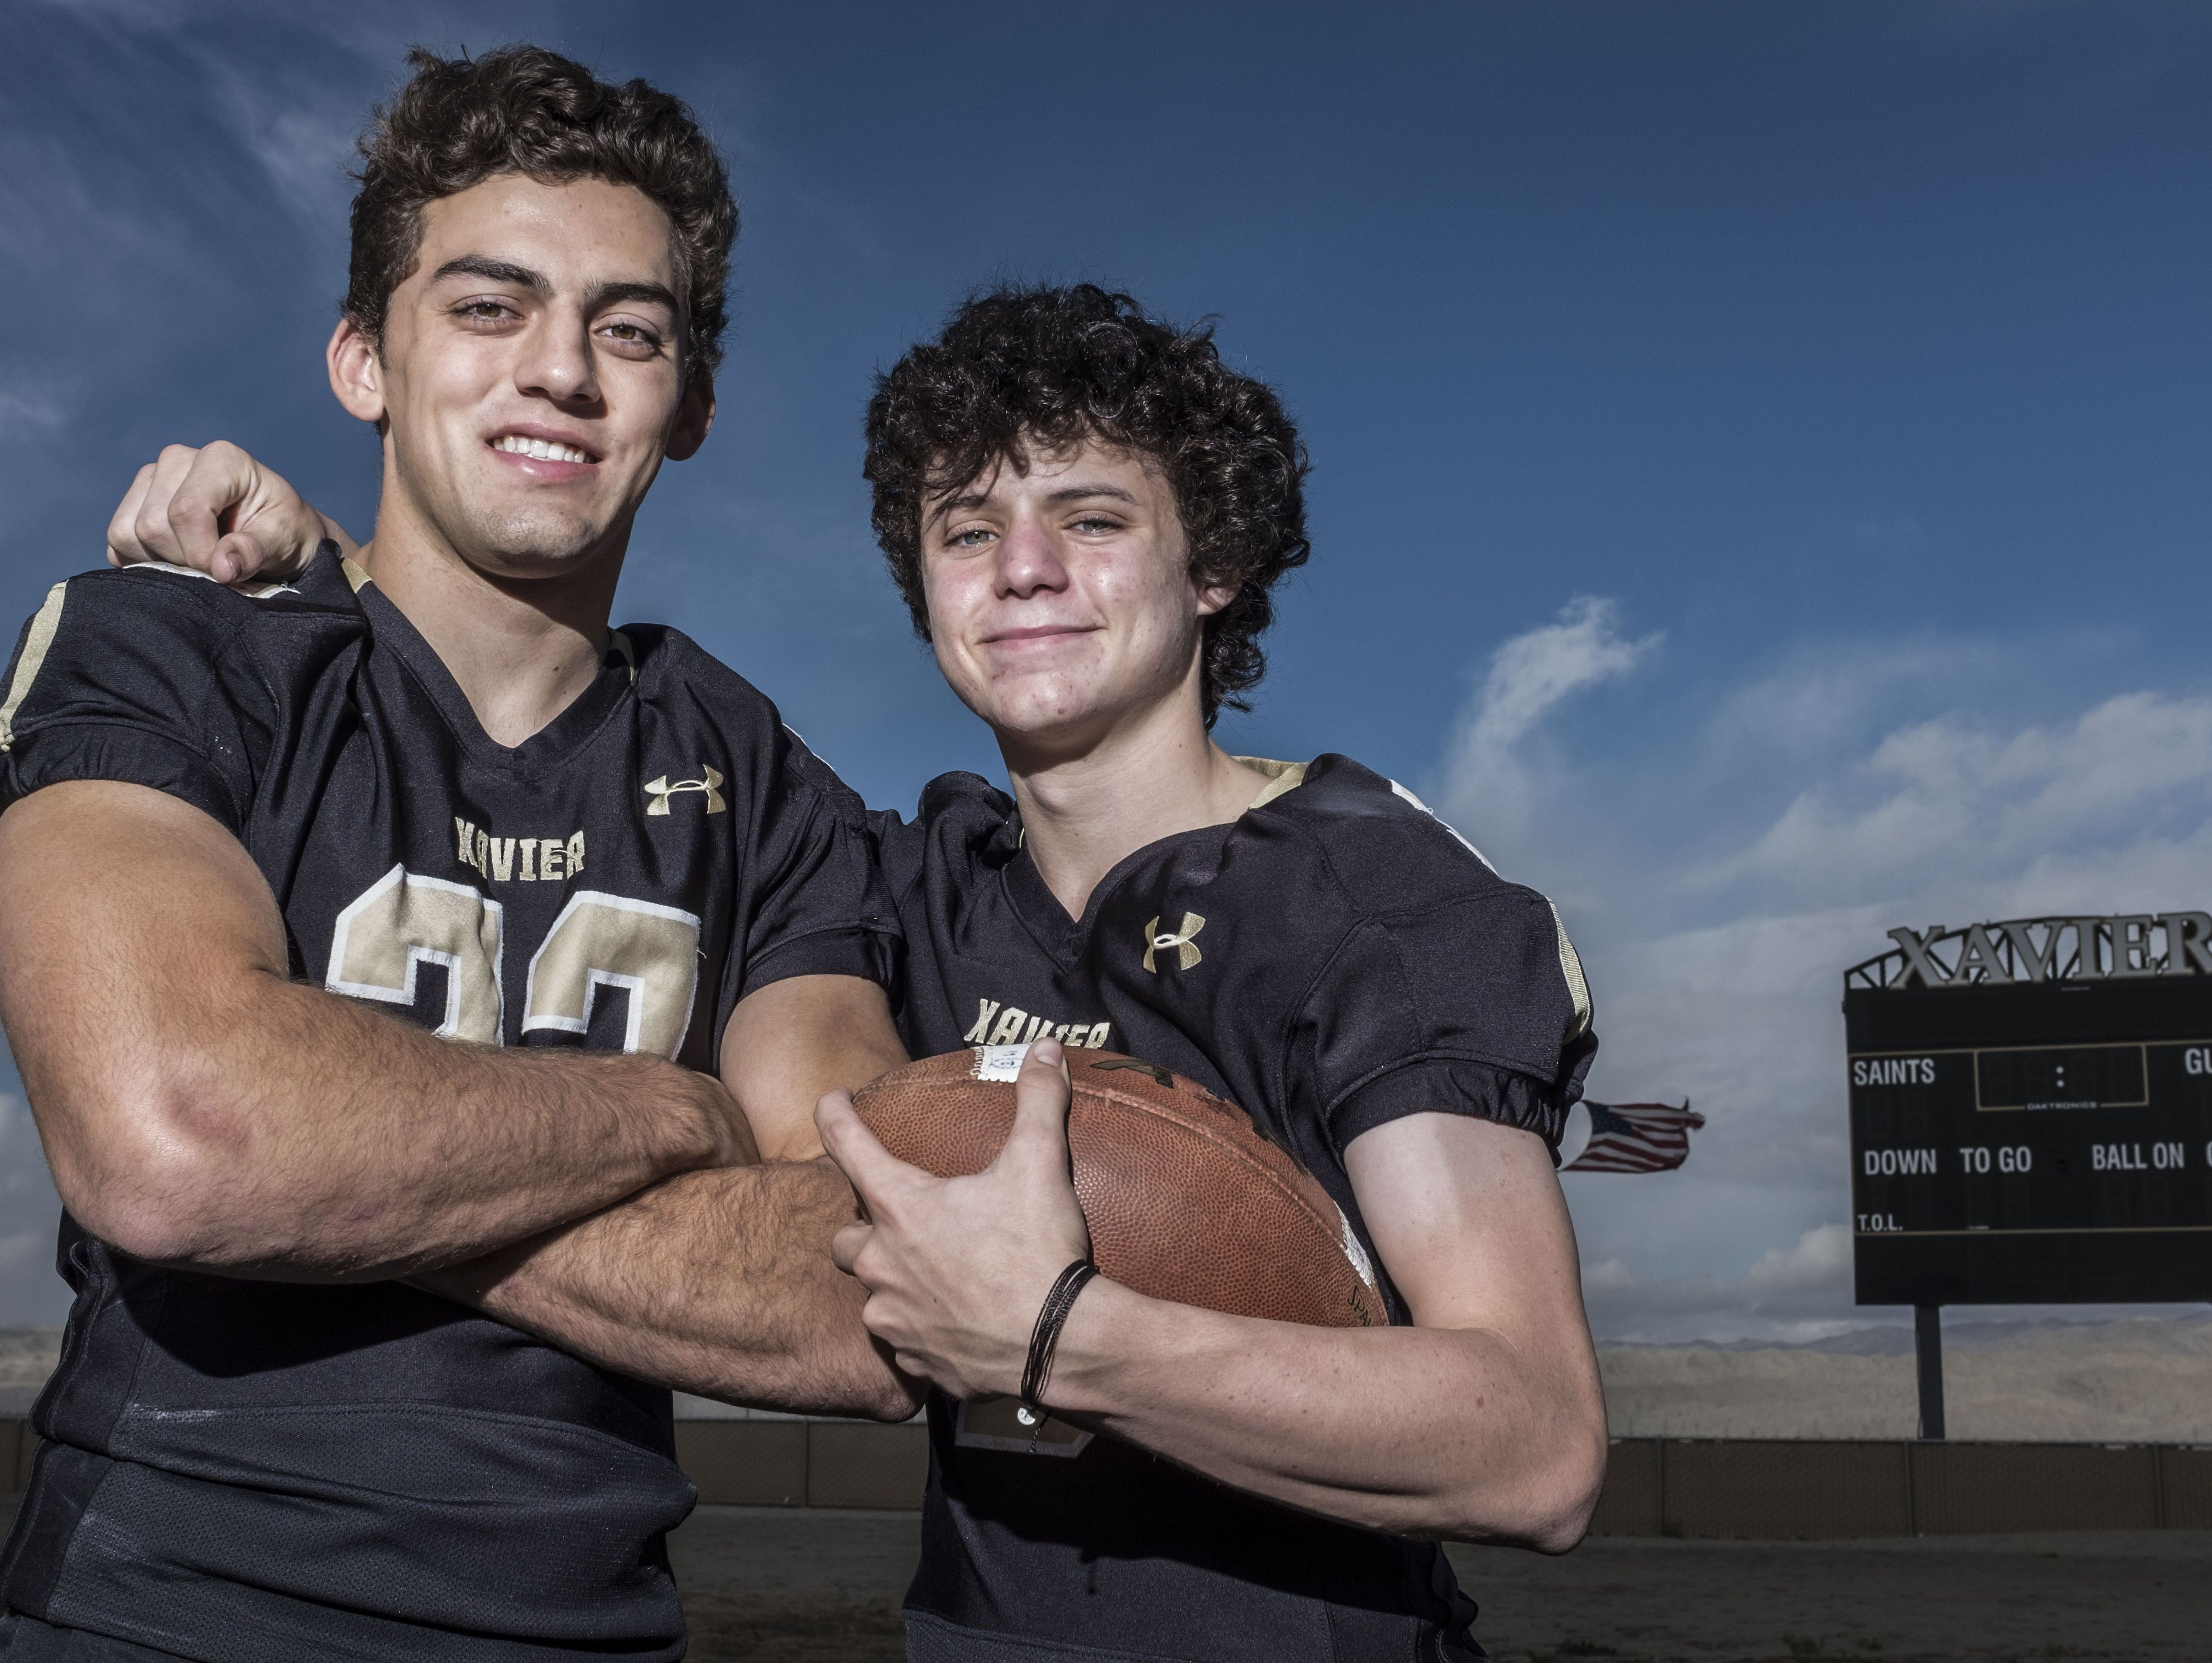 Saints football players Chandler Barbato, right, and Mason Sarna at Xavier College Prep in Palm Desert on Friday, December 16, 2016.